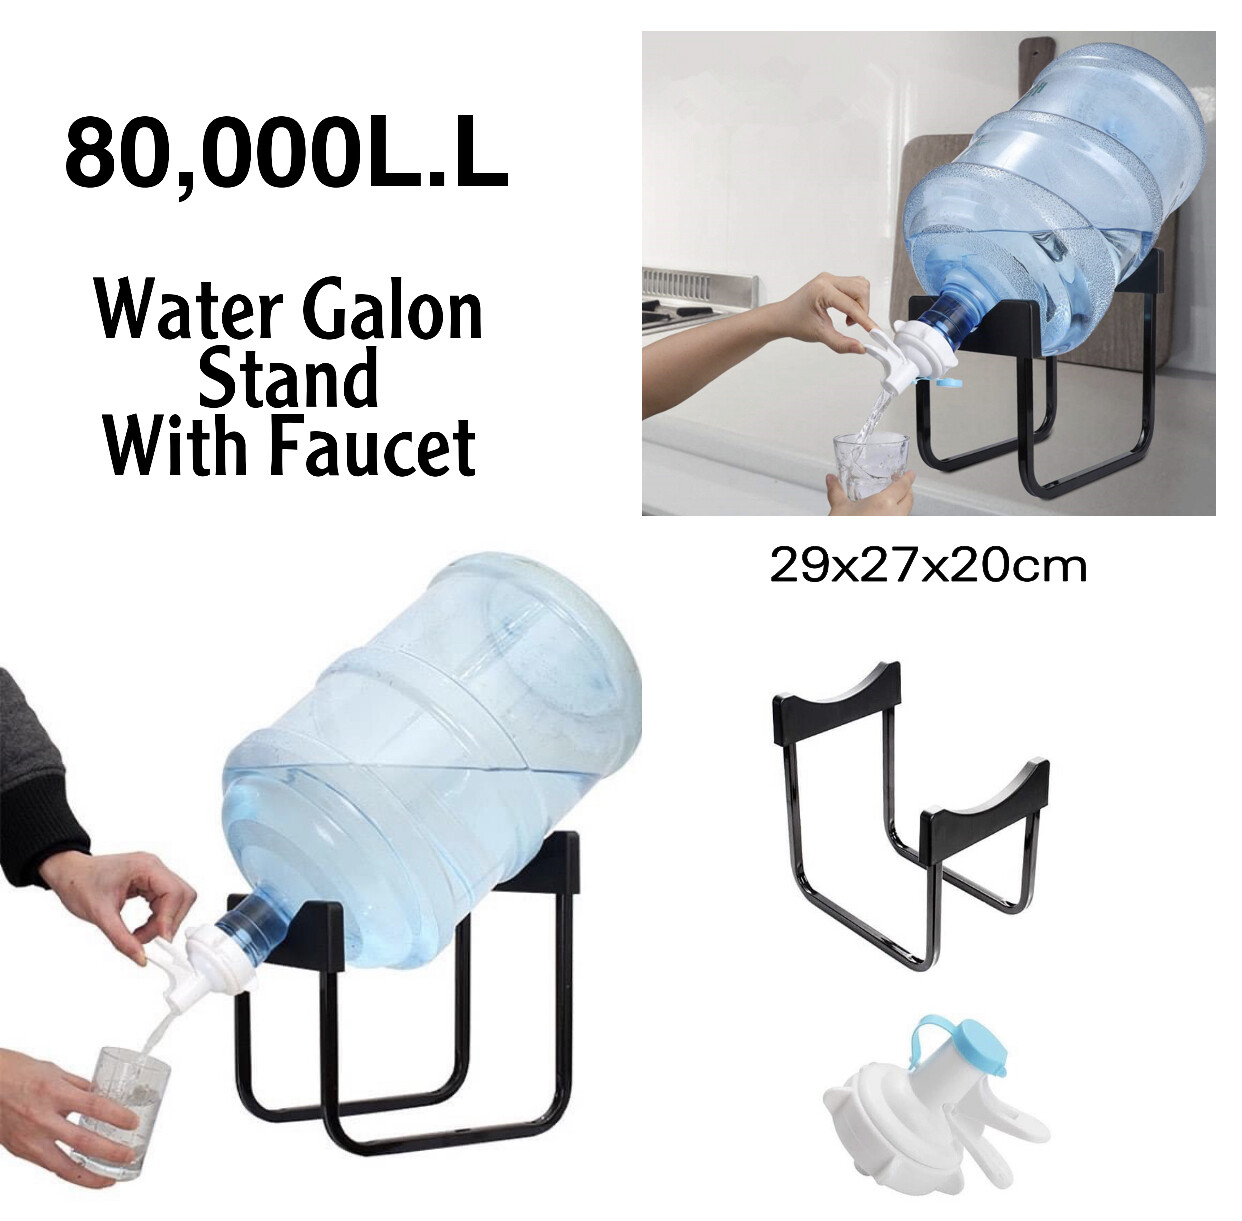 Water Galon Stand